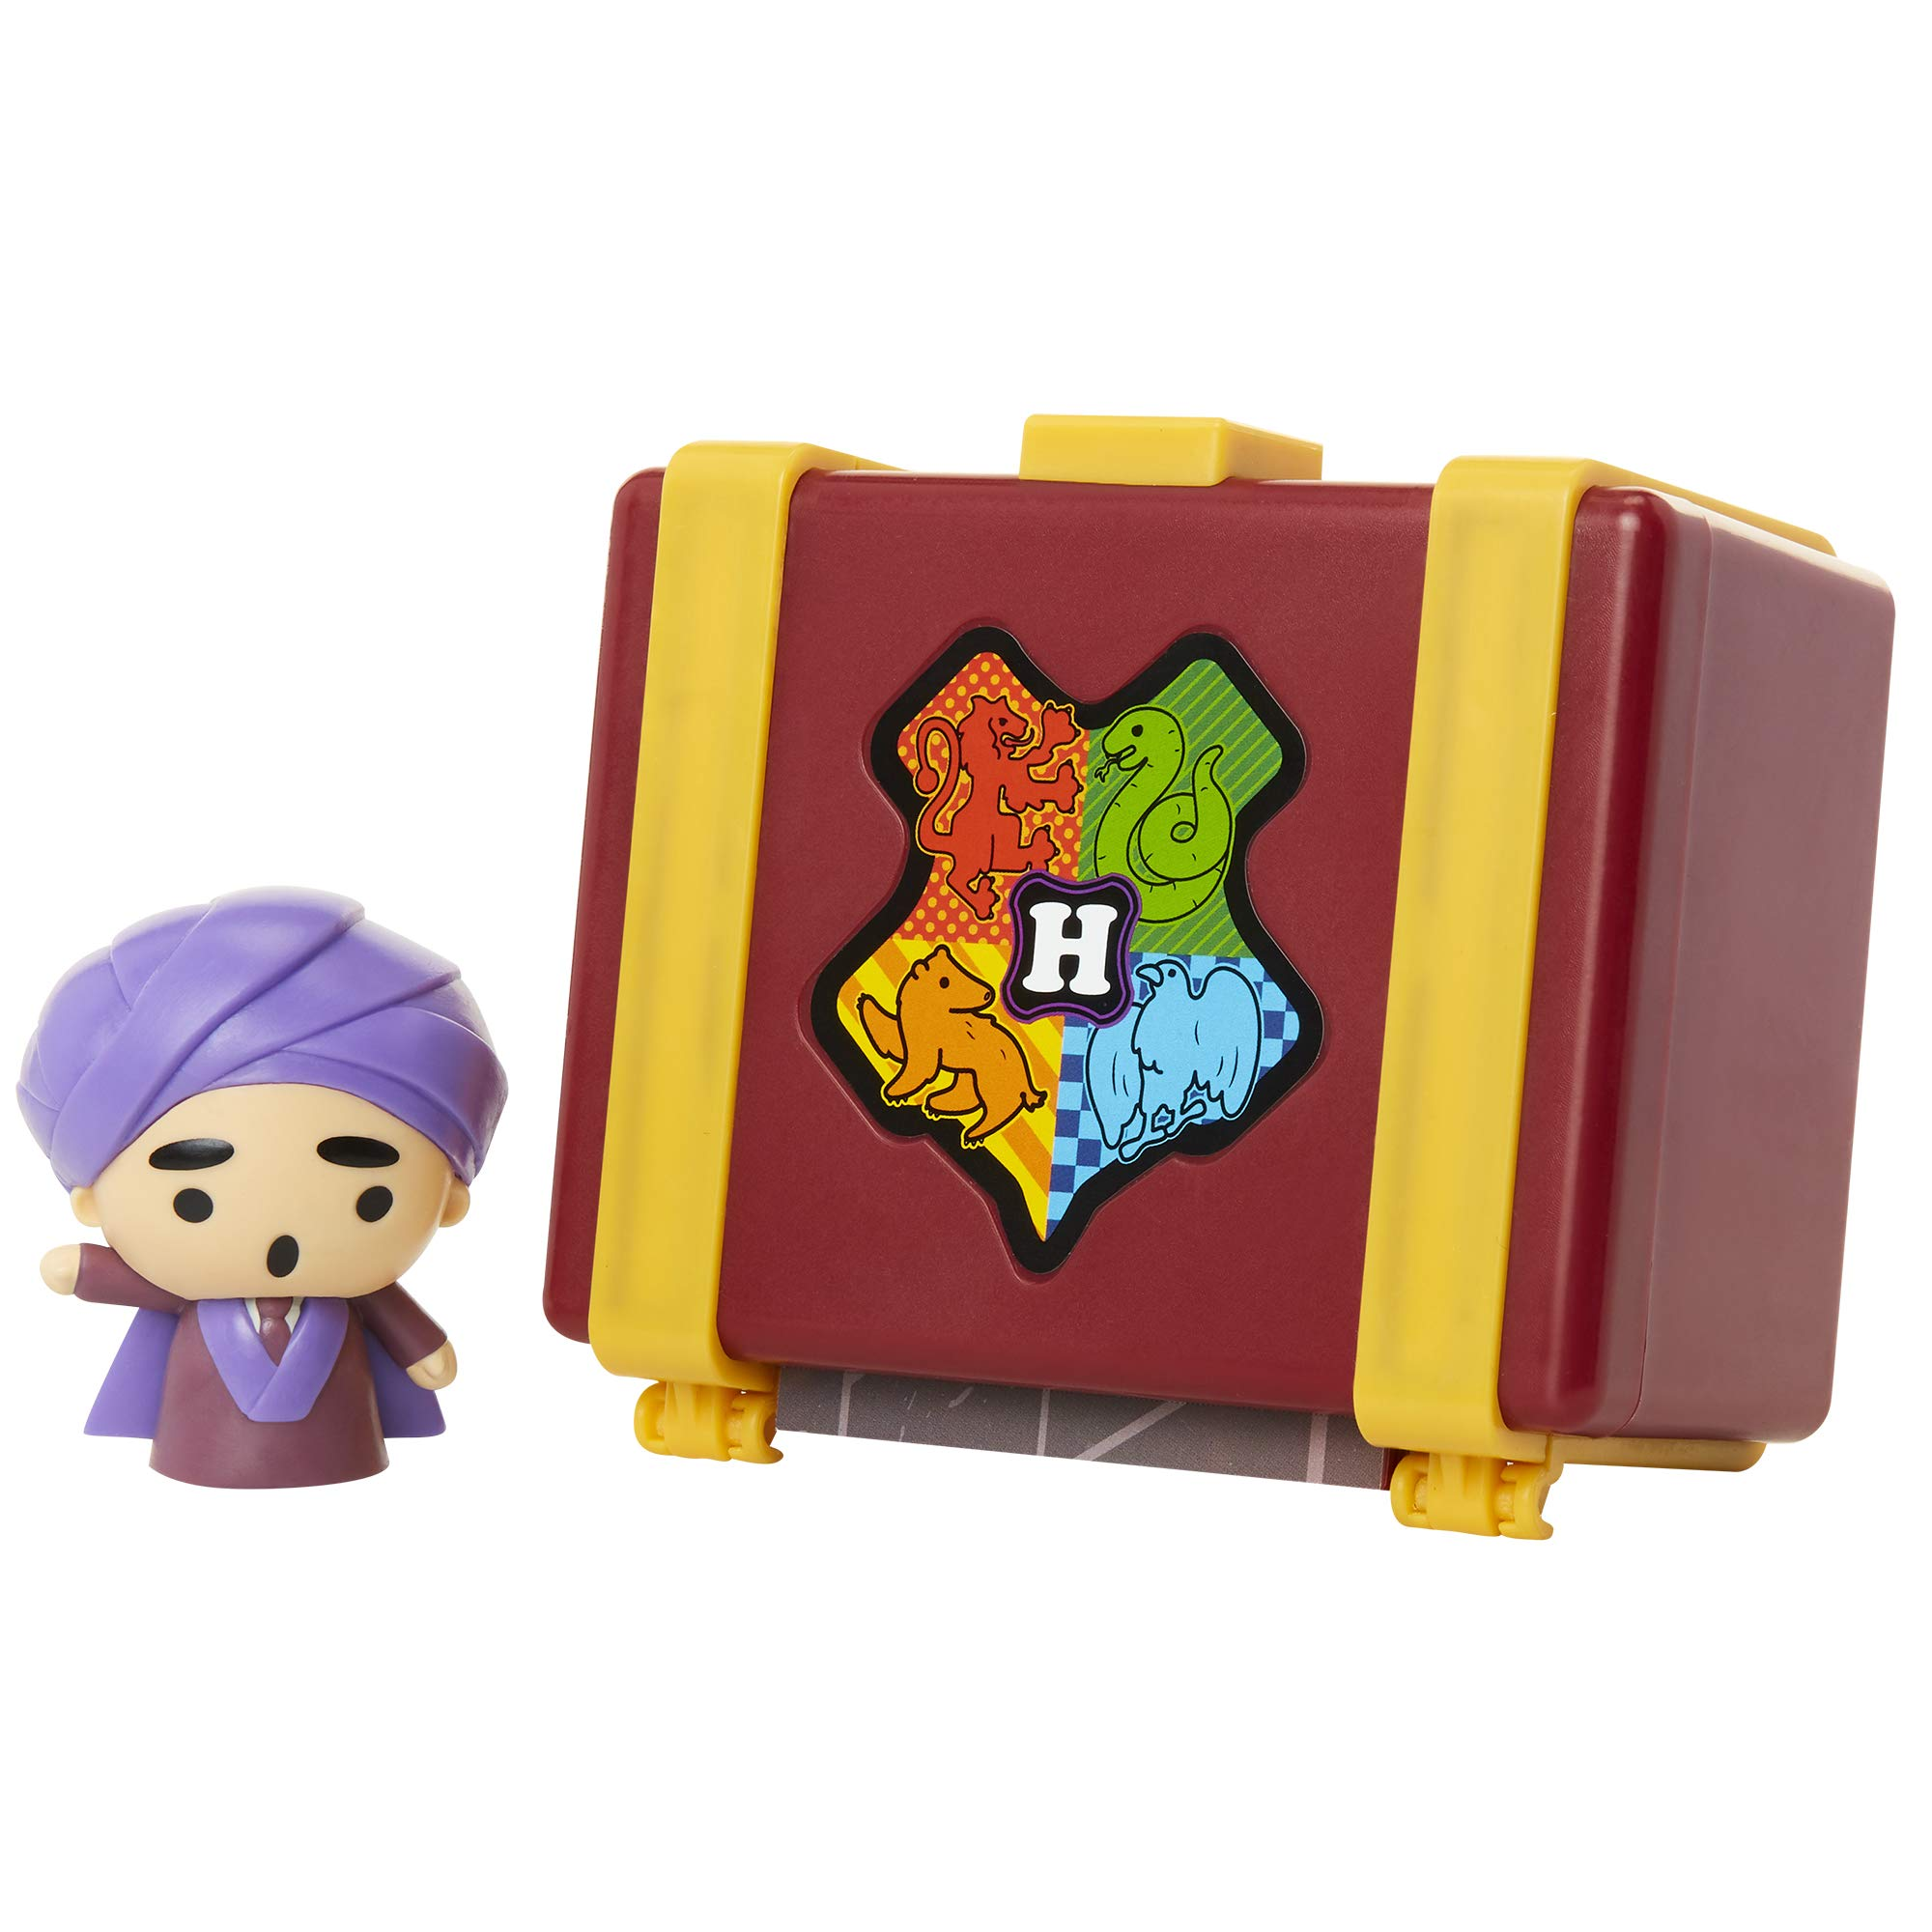 """HARRY POTTER Charms Professor Quirrell Collectible 2"""" Toy Figure Playsets, Connect & Display to Create Memorable Scenes - 12 Different Figures to Collect!"""